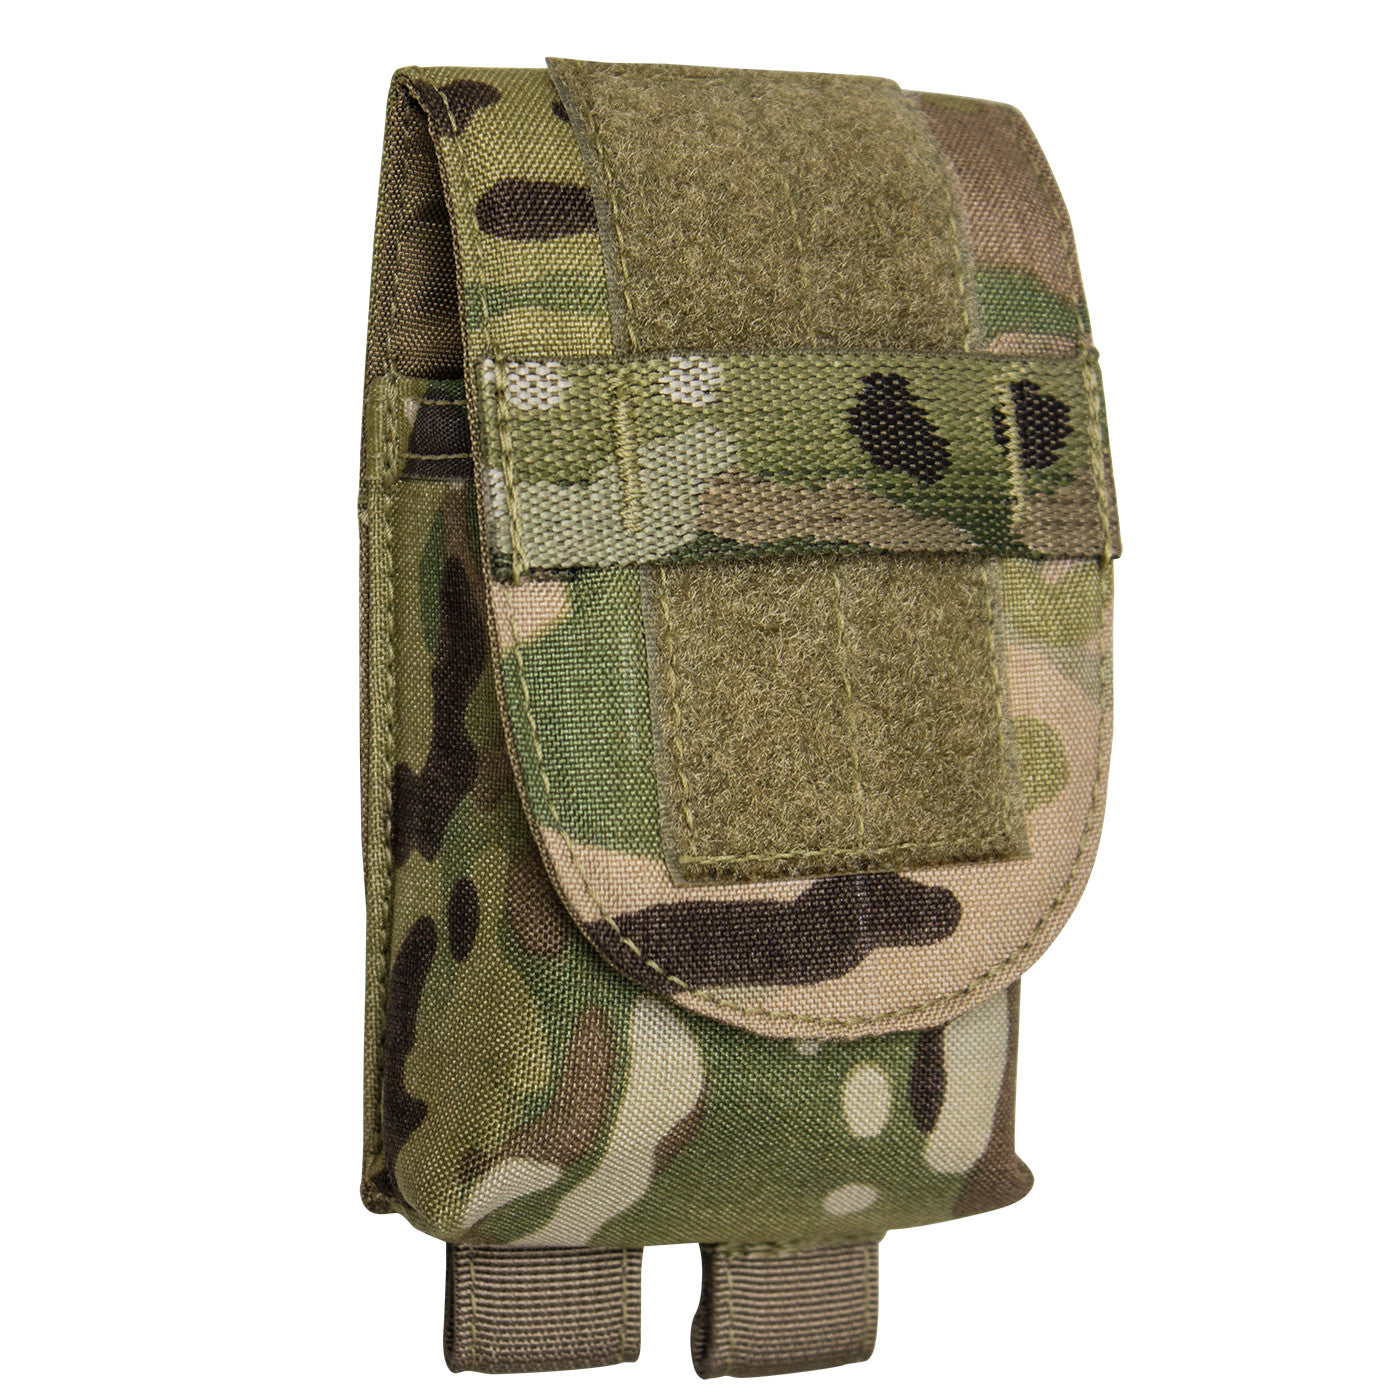 Personal Electronics Pouch